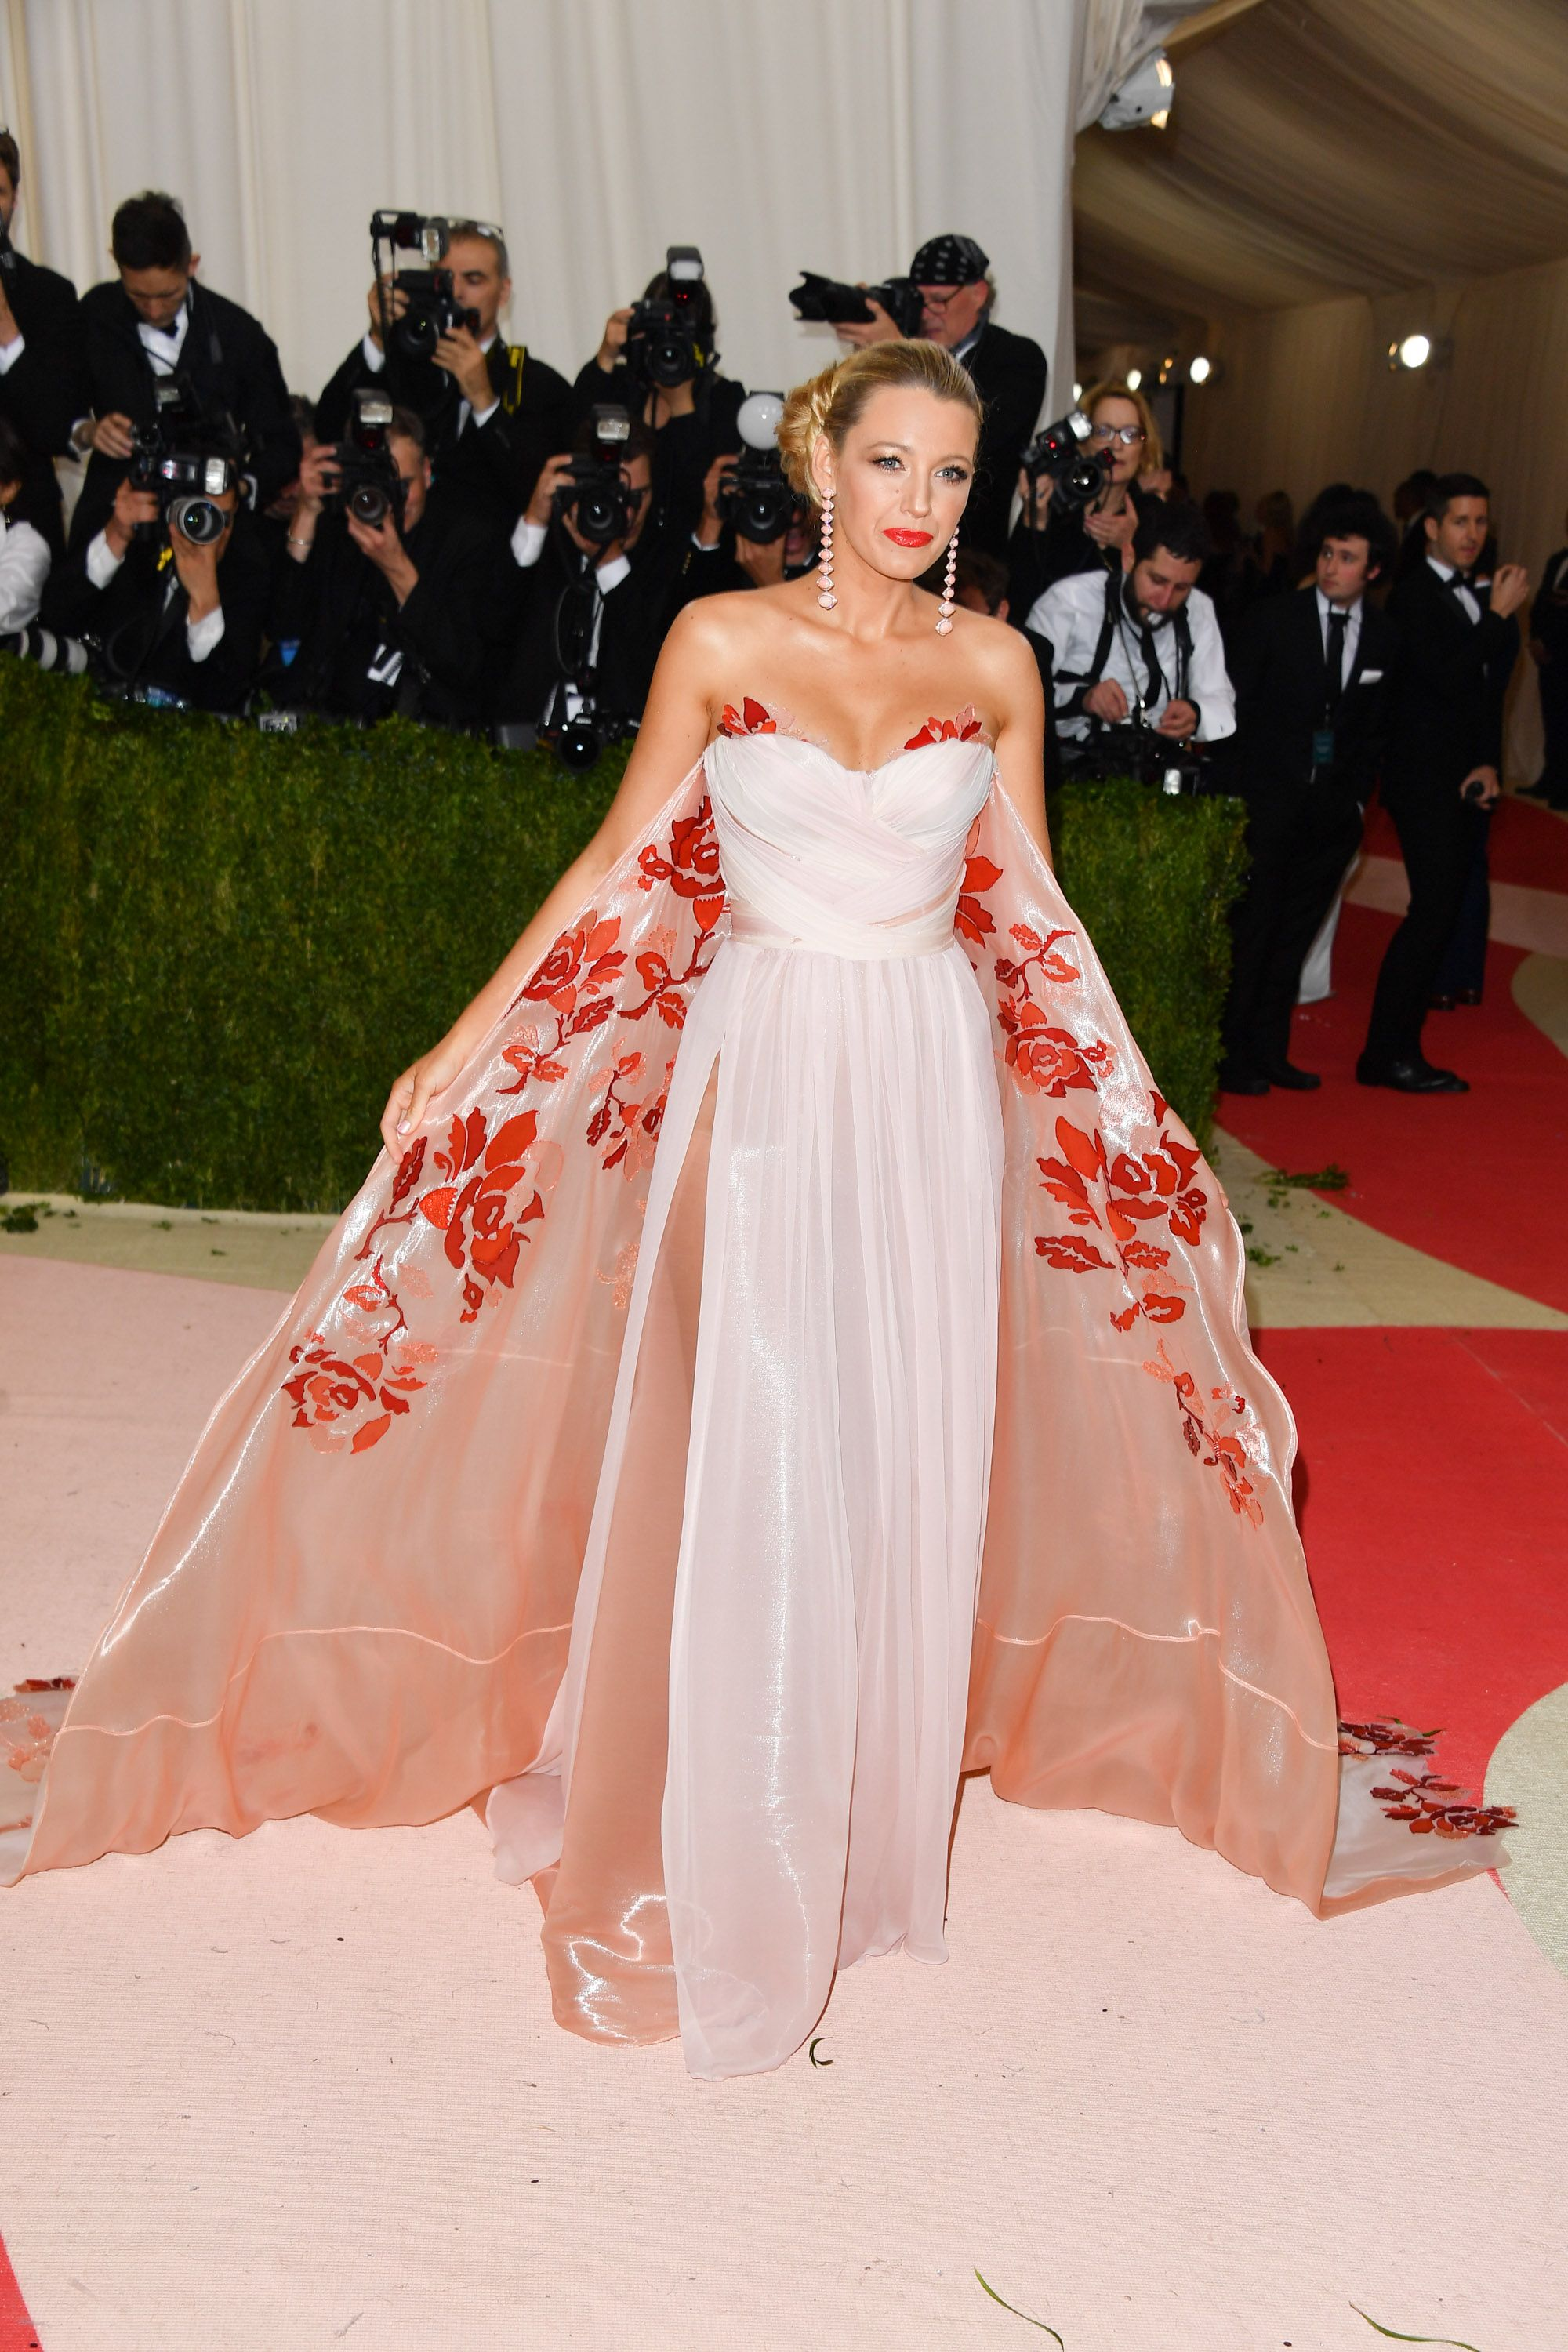 bb4364740a0 Blake Lively's best outfits in photos